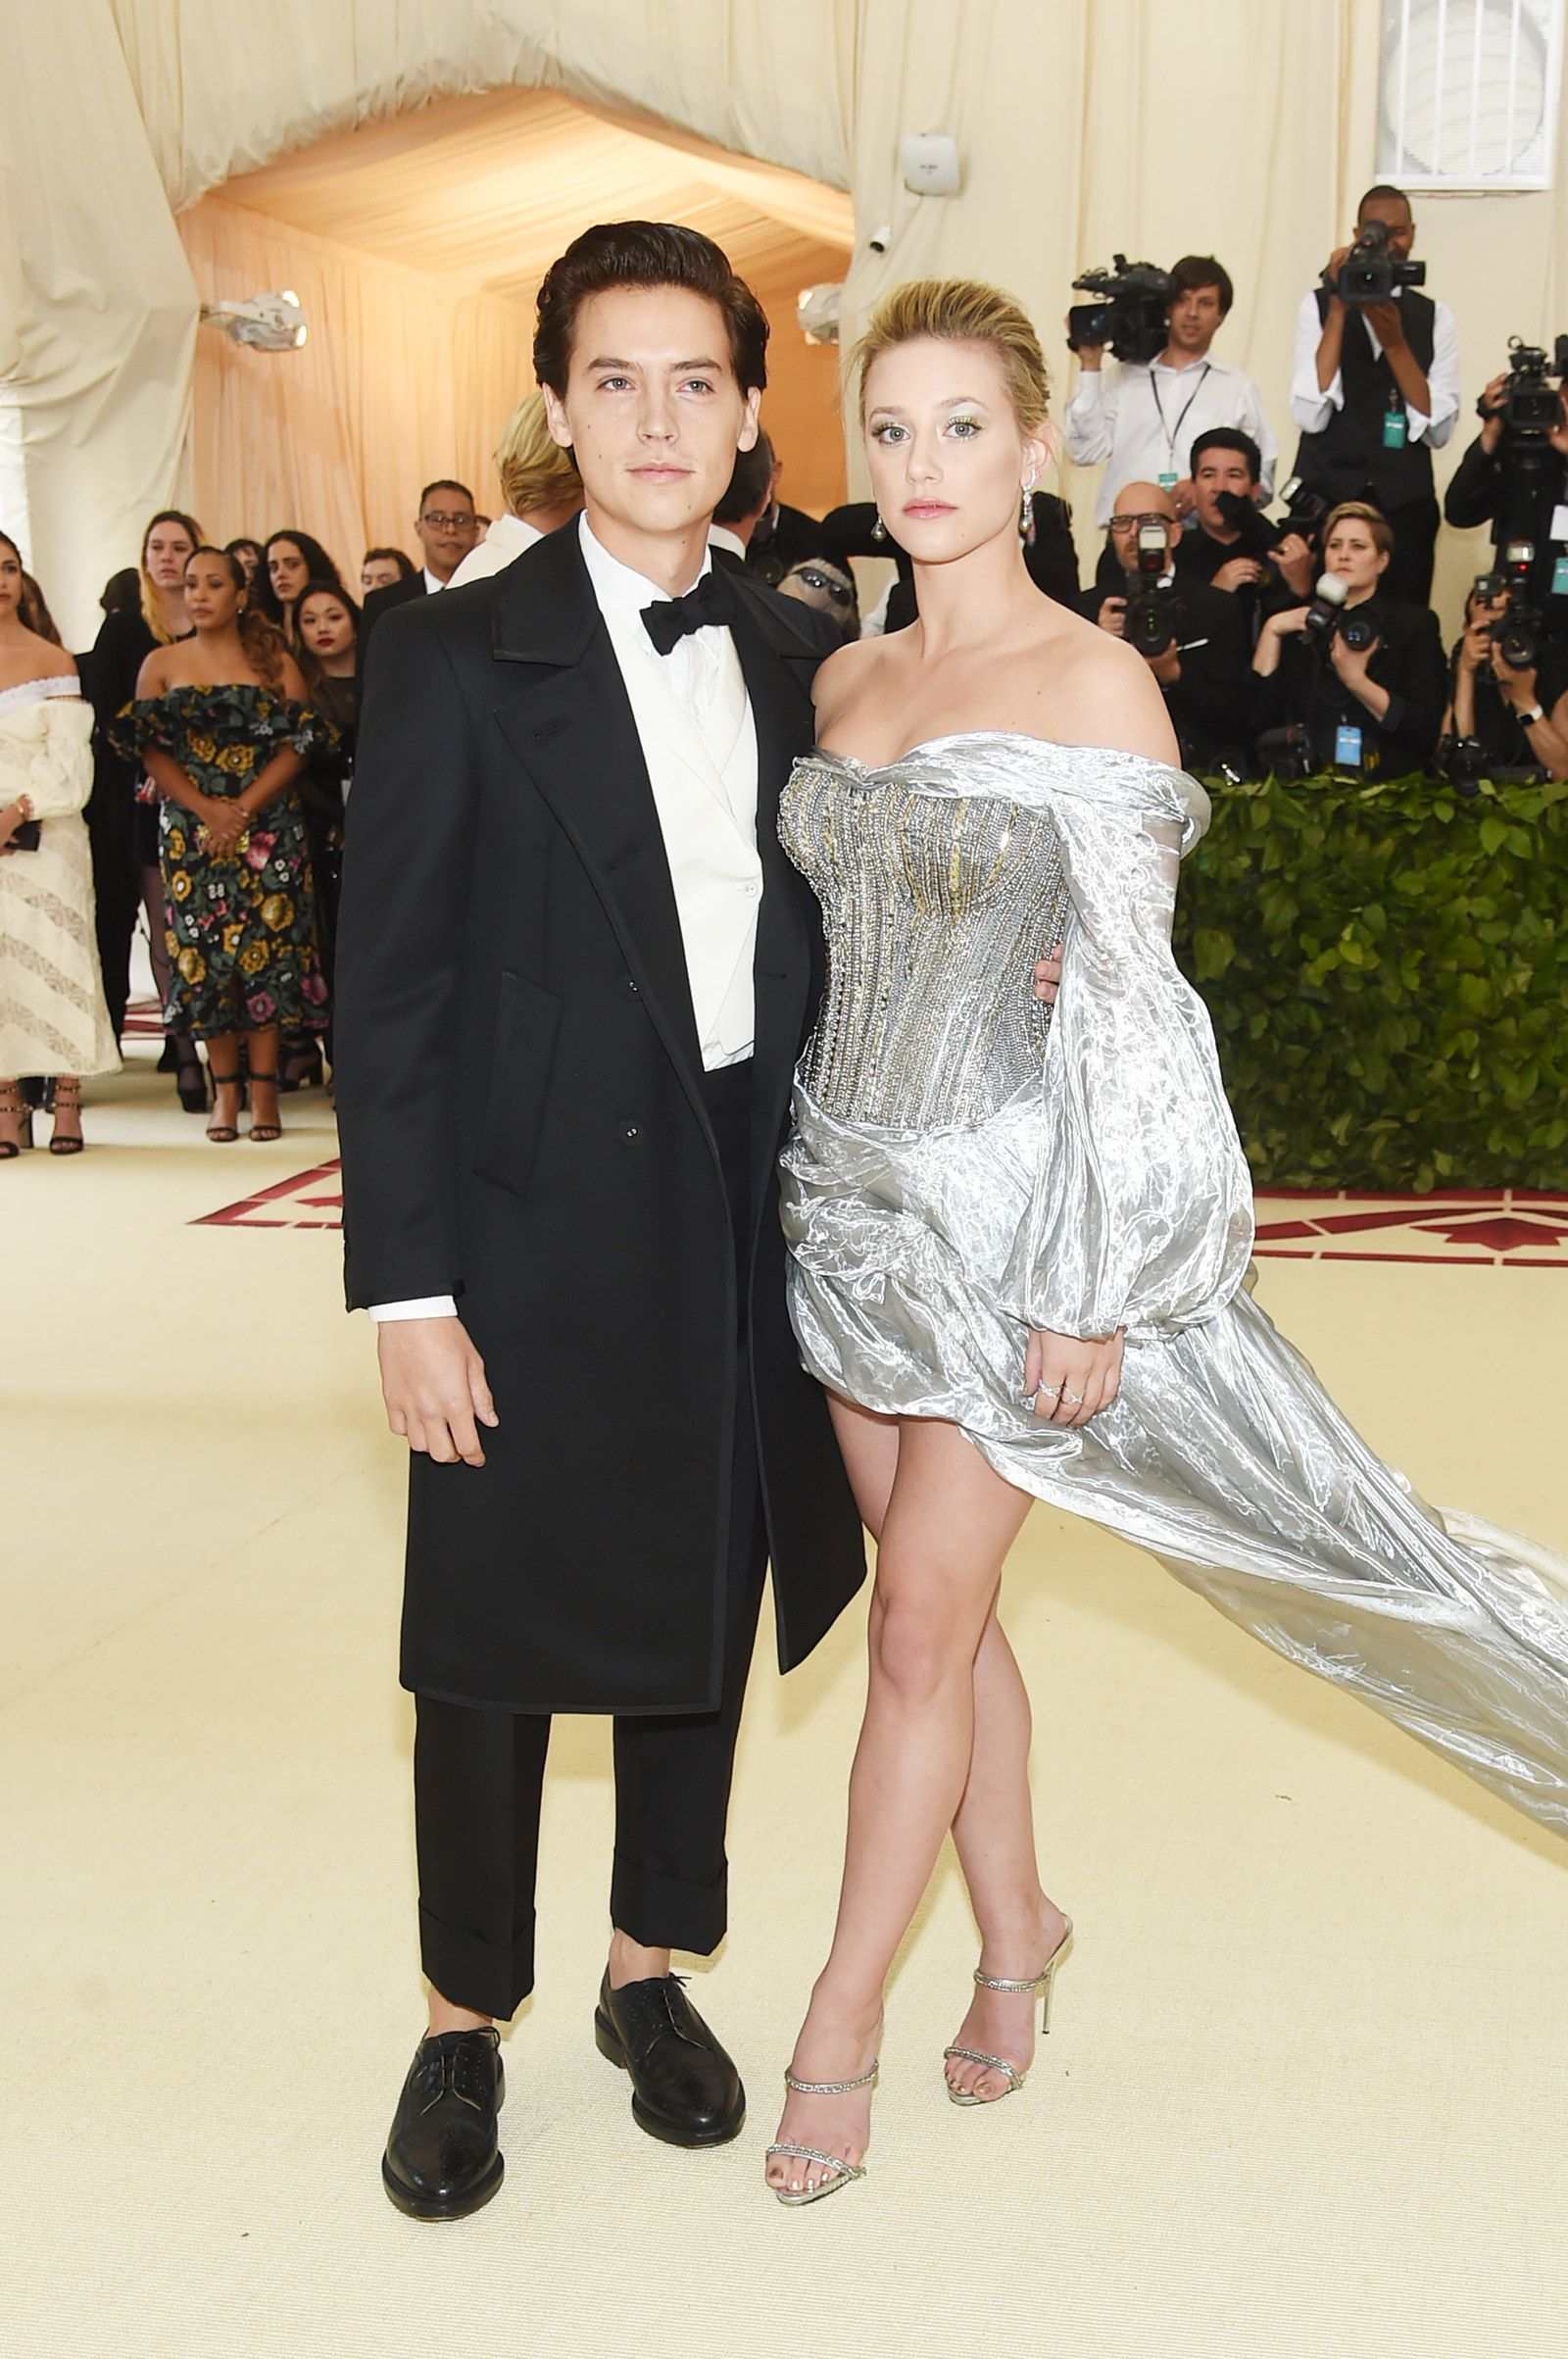 Lili Reinhart And Cole Sprouse Walked The Met Gala Carpet Together And Oh My Bughead Lili Reinhart And Cole Sprouse Celebrity Dresses Red Carpet Red Carpet Couples